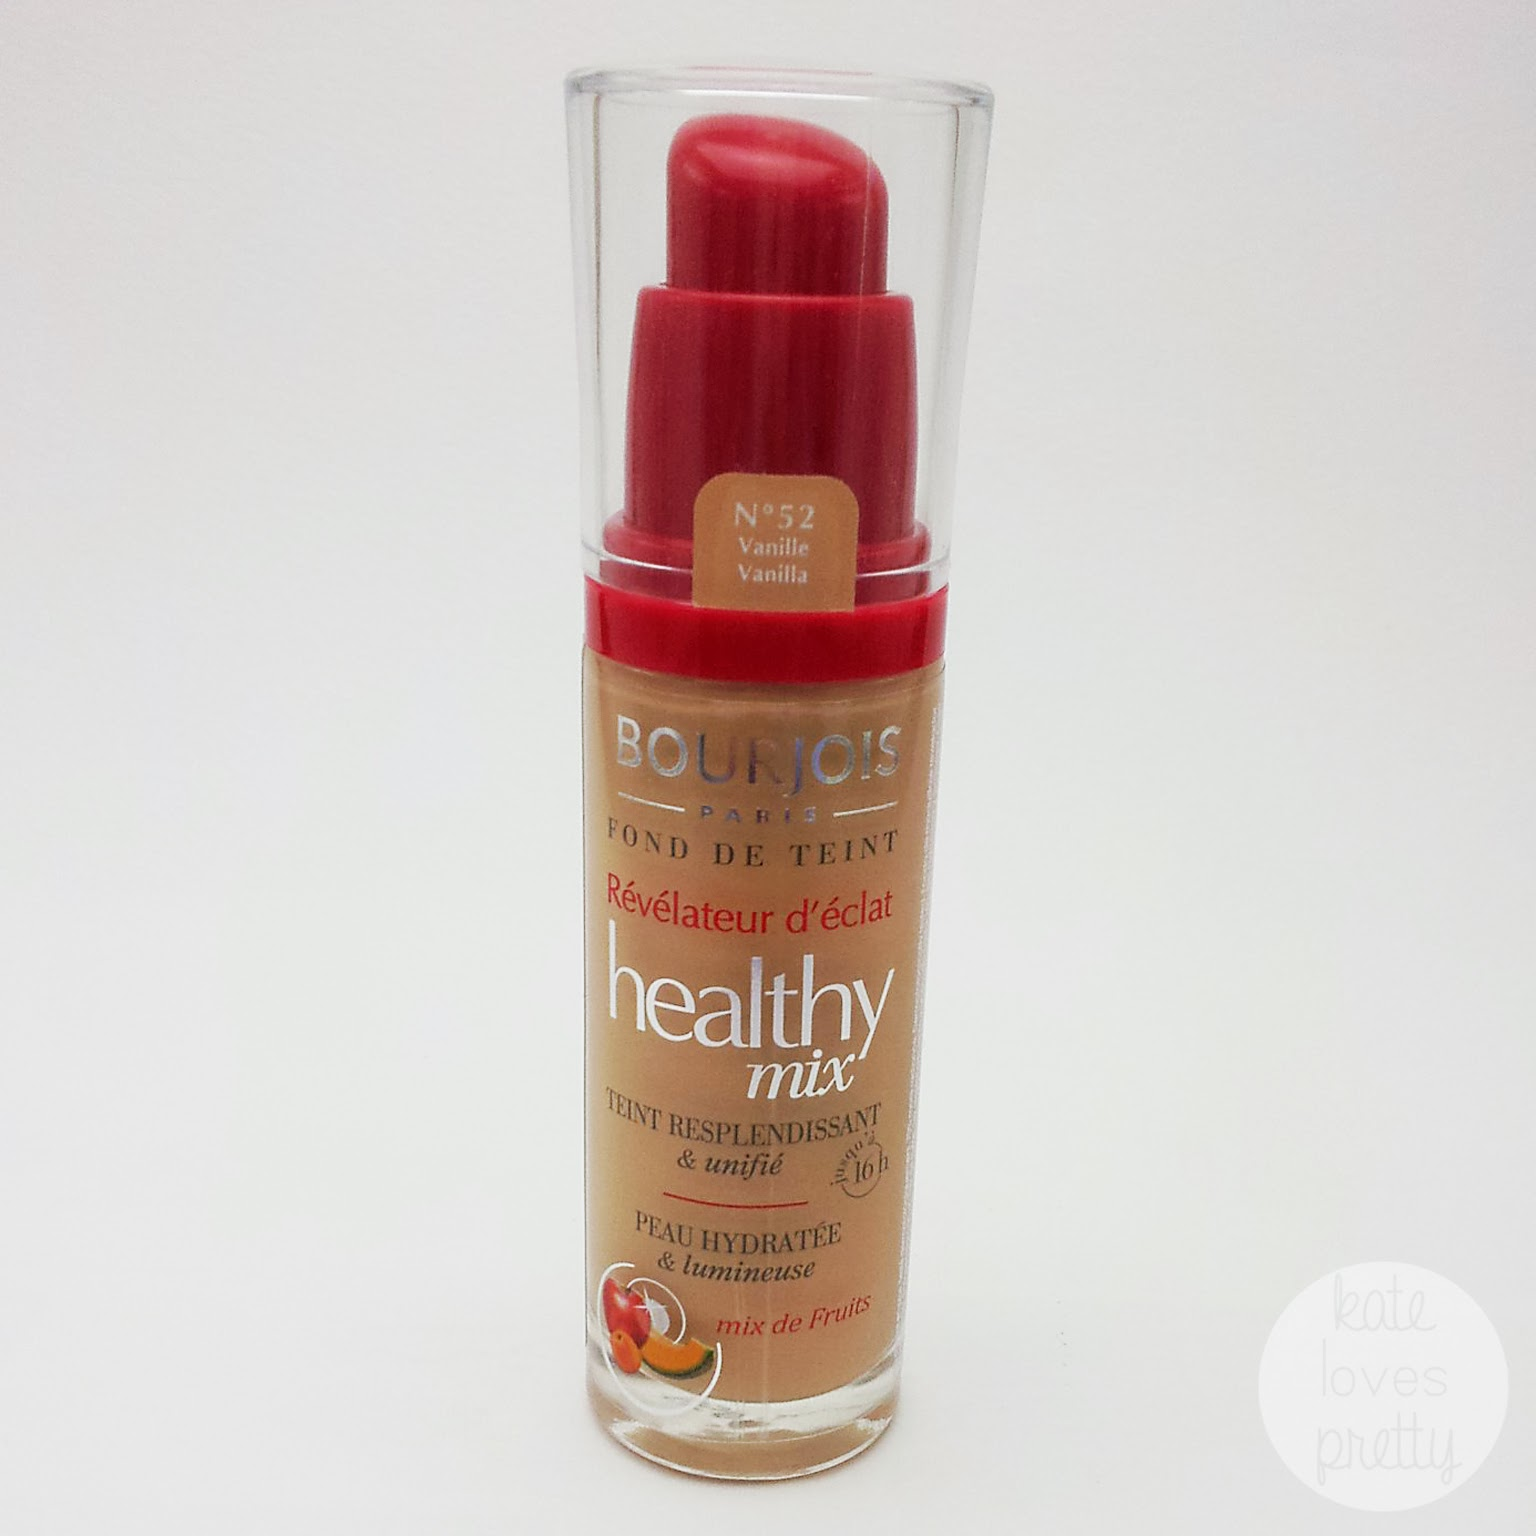 Kate Loves Pretty Review Bourjois Healthy Mix Radiance Reveal Foundation In 52 Vanilla